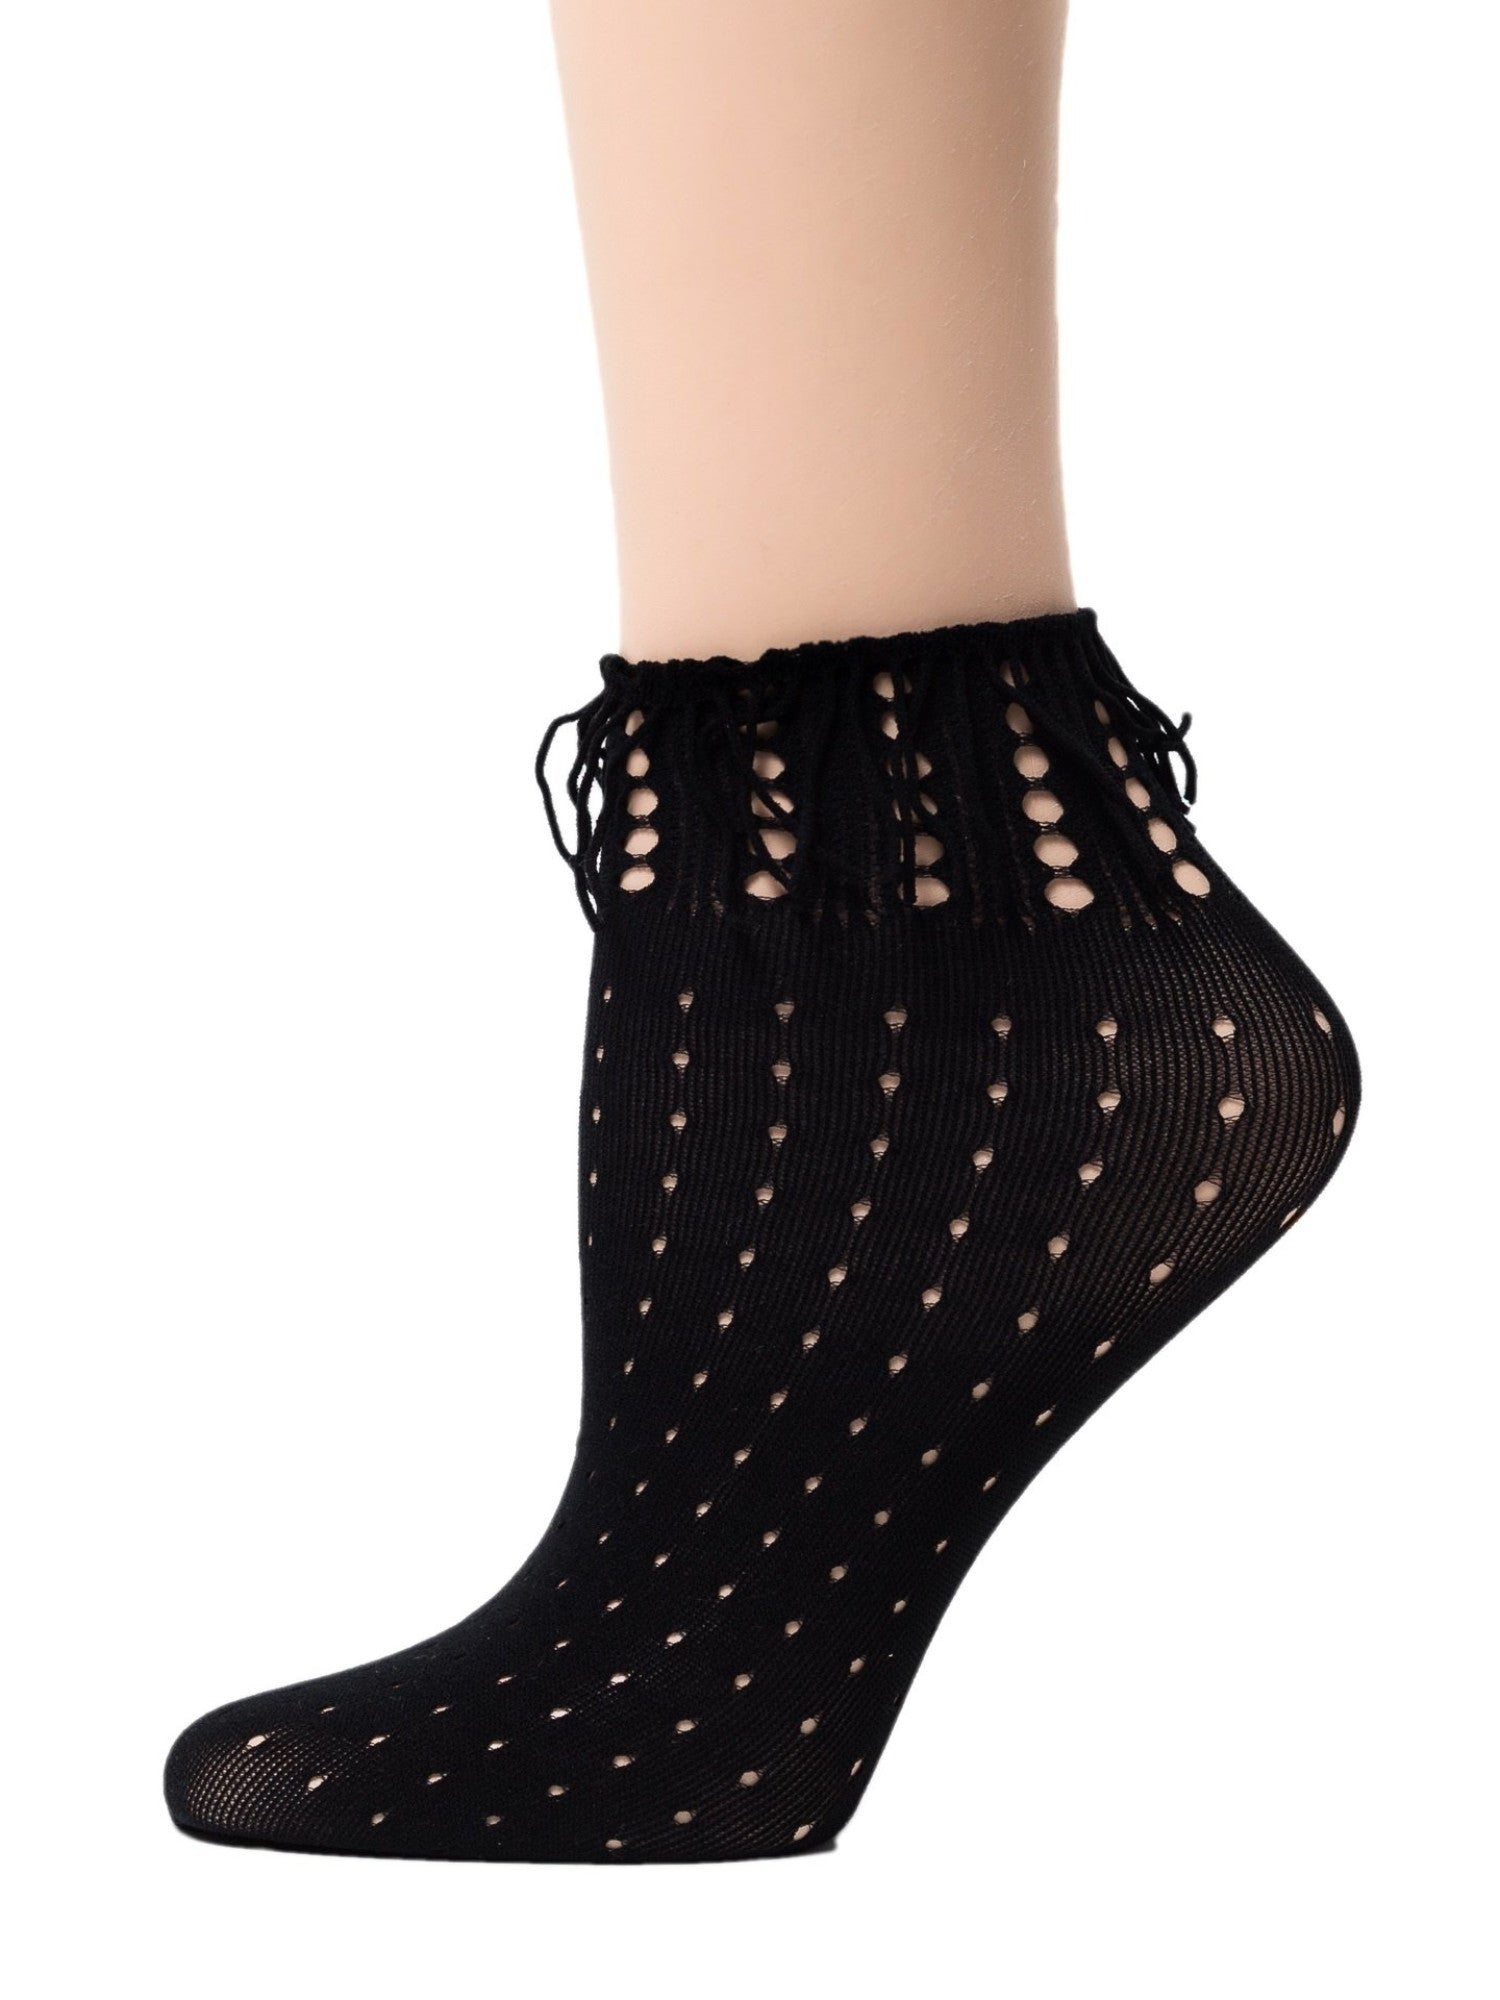 Wild Dark Black Mesh Socks - Global Trendz Fashion®